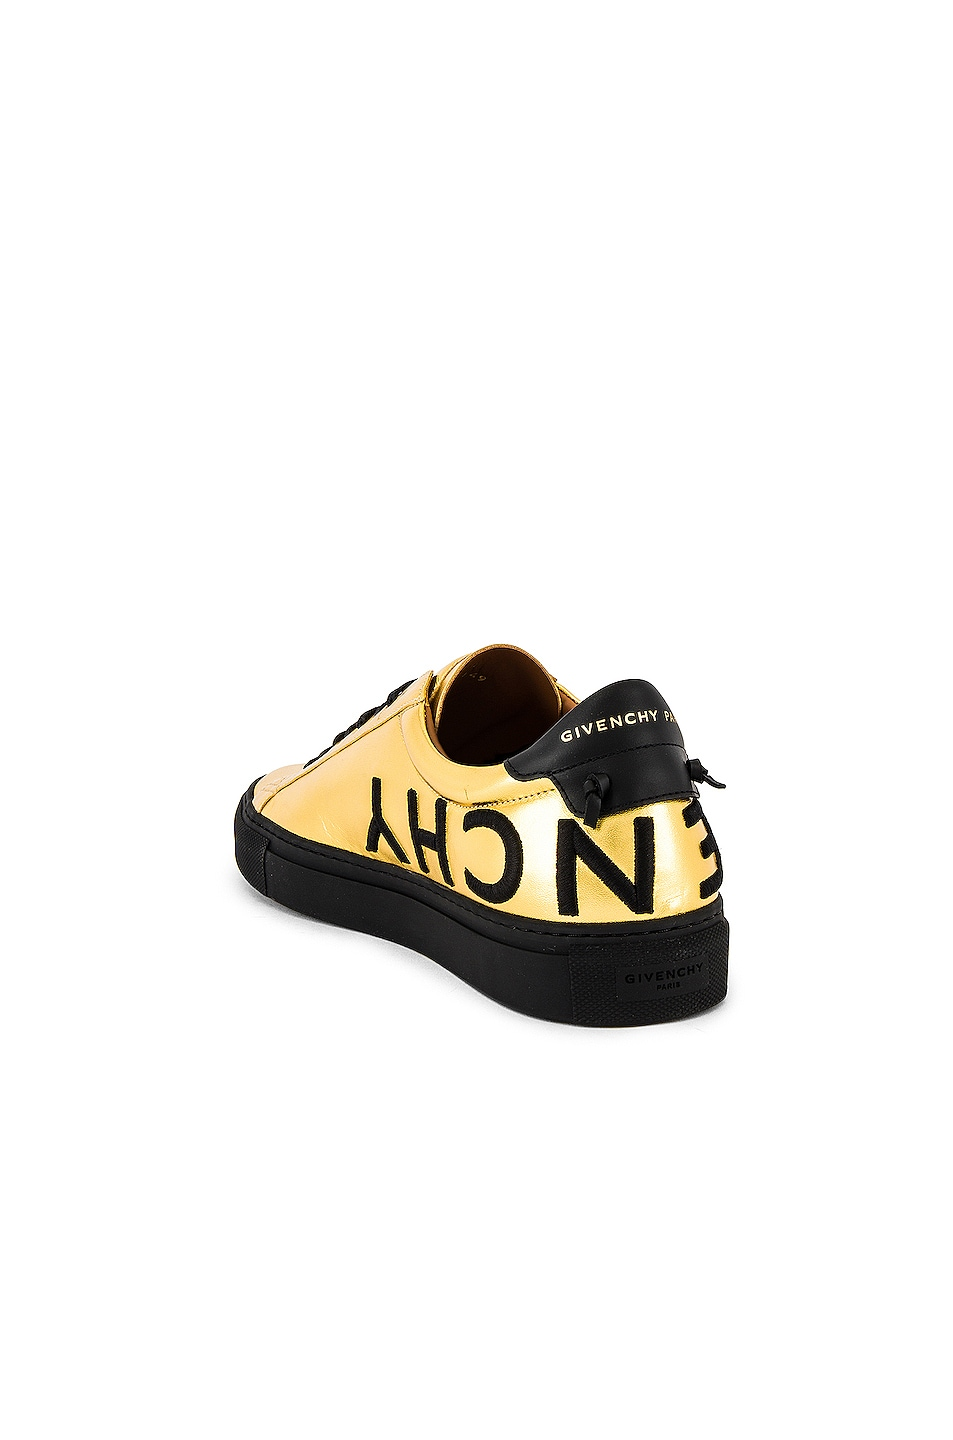 Image 3 of Givenchy Urban Street Low Sneakers in Gold